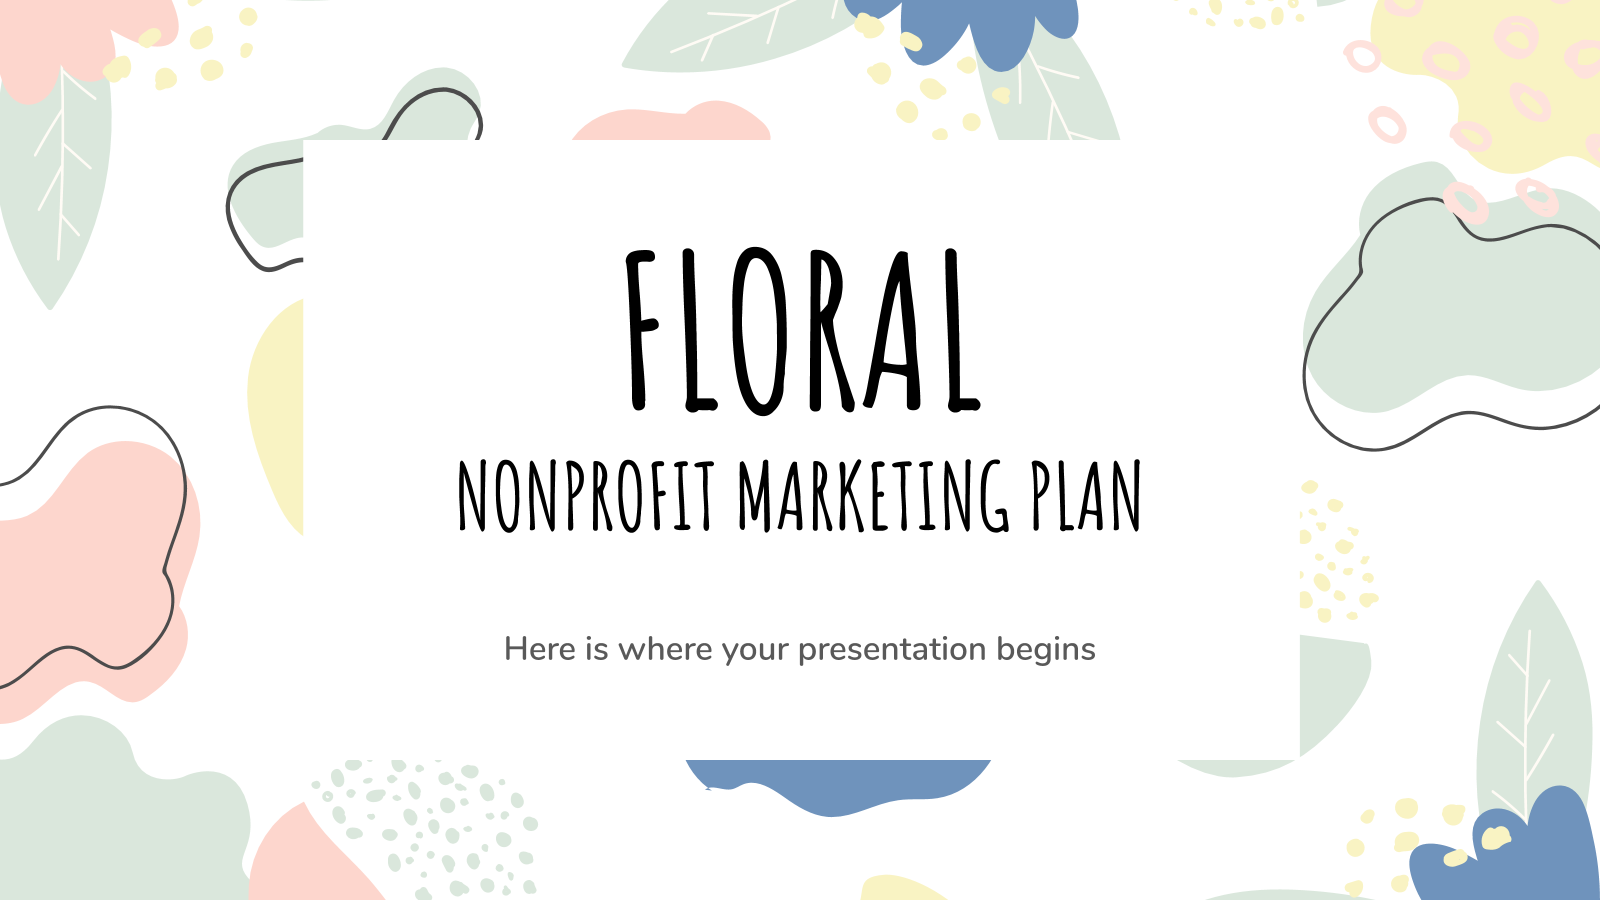 Plan marketing à but non lucratif floral : Modèles de présentation